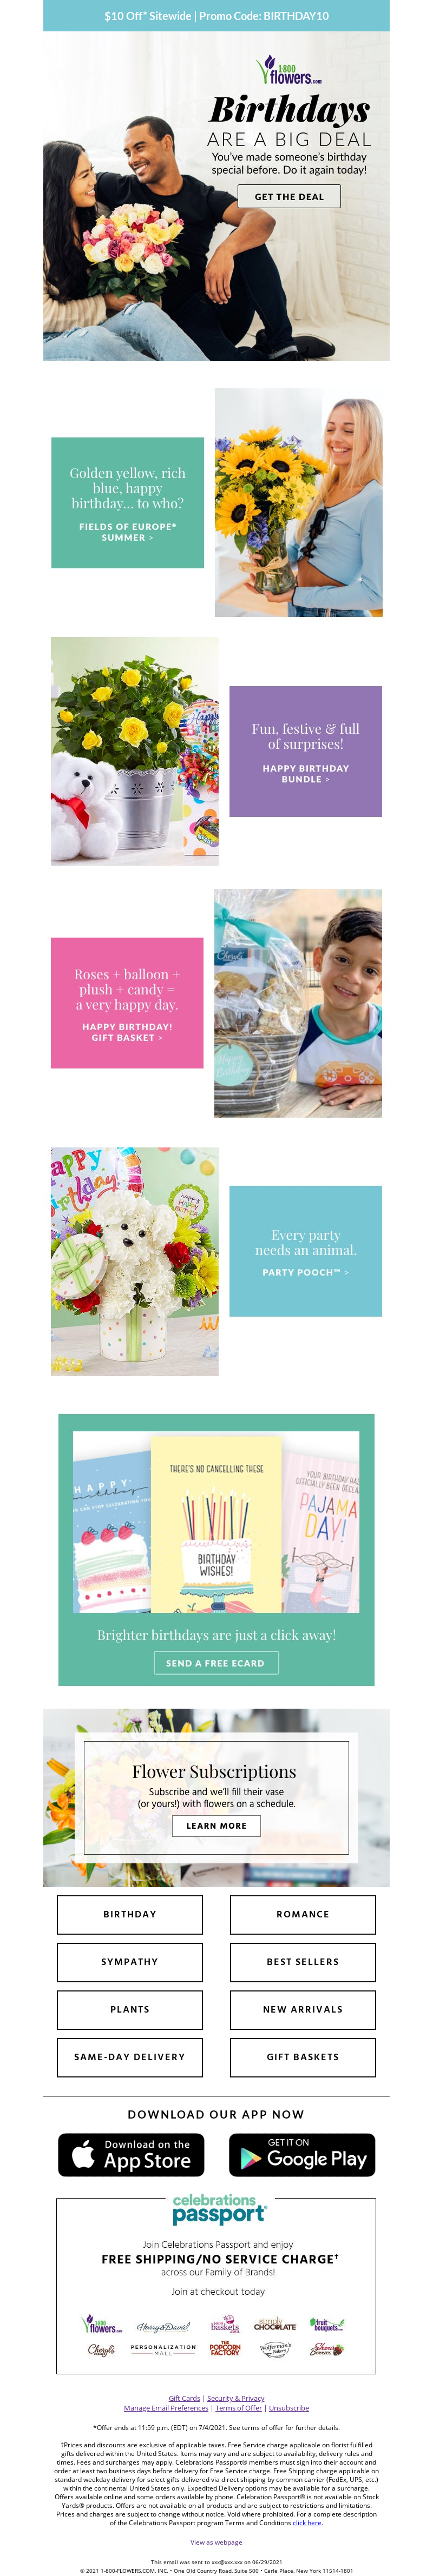 Personalization Universe - Bring Some Color to Their Birthday